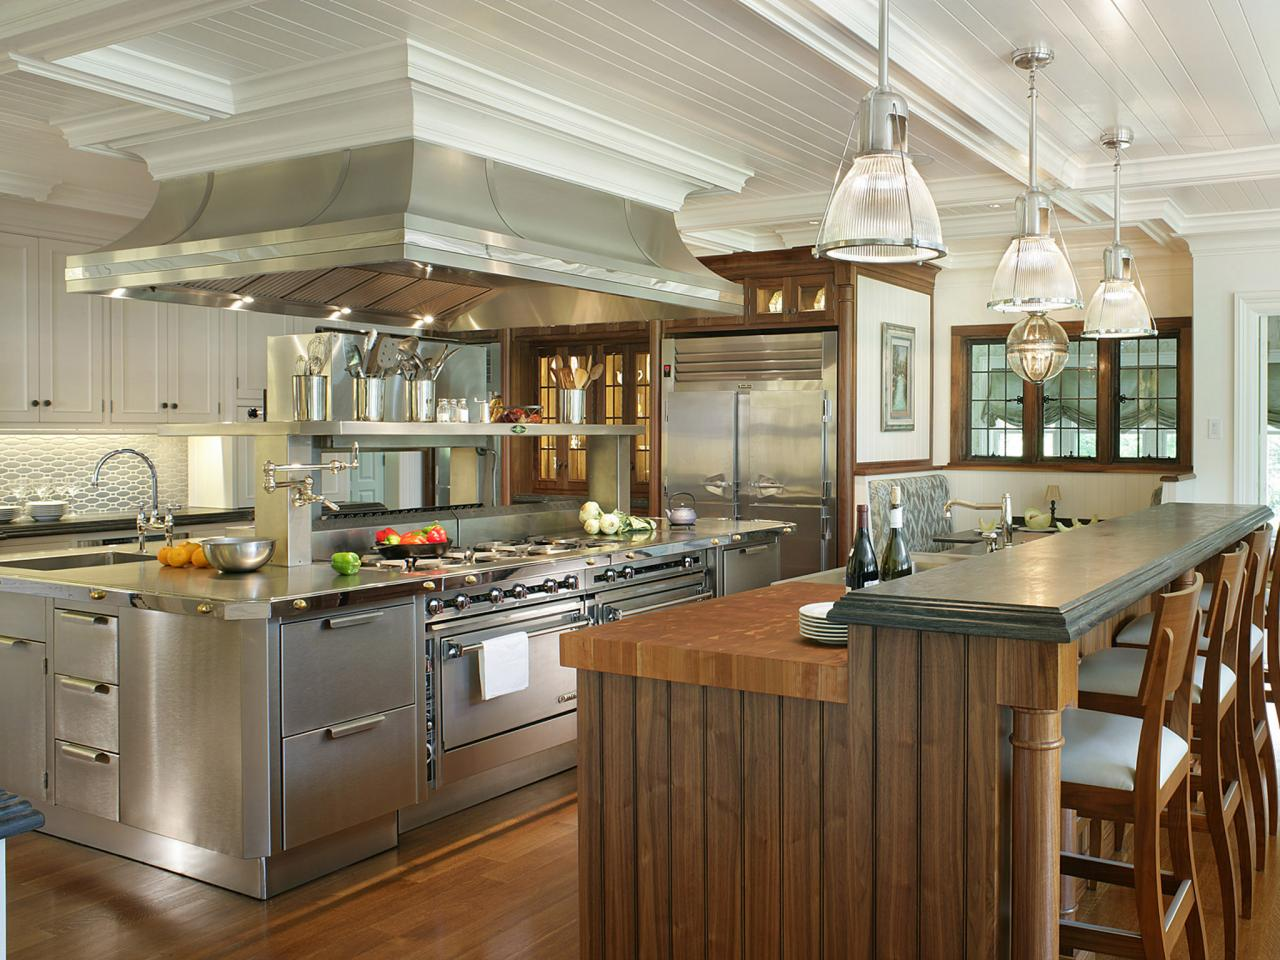 rs_peter-salerno-stainless-steel-kitchen_s4x3-jpg-rend-hgtvcom-1280-960